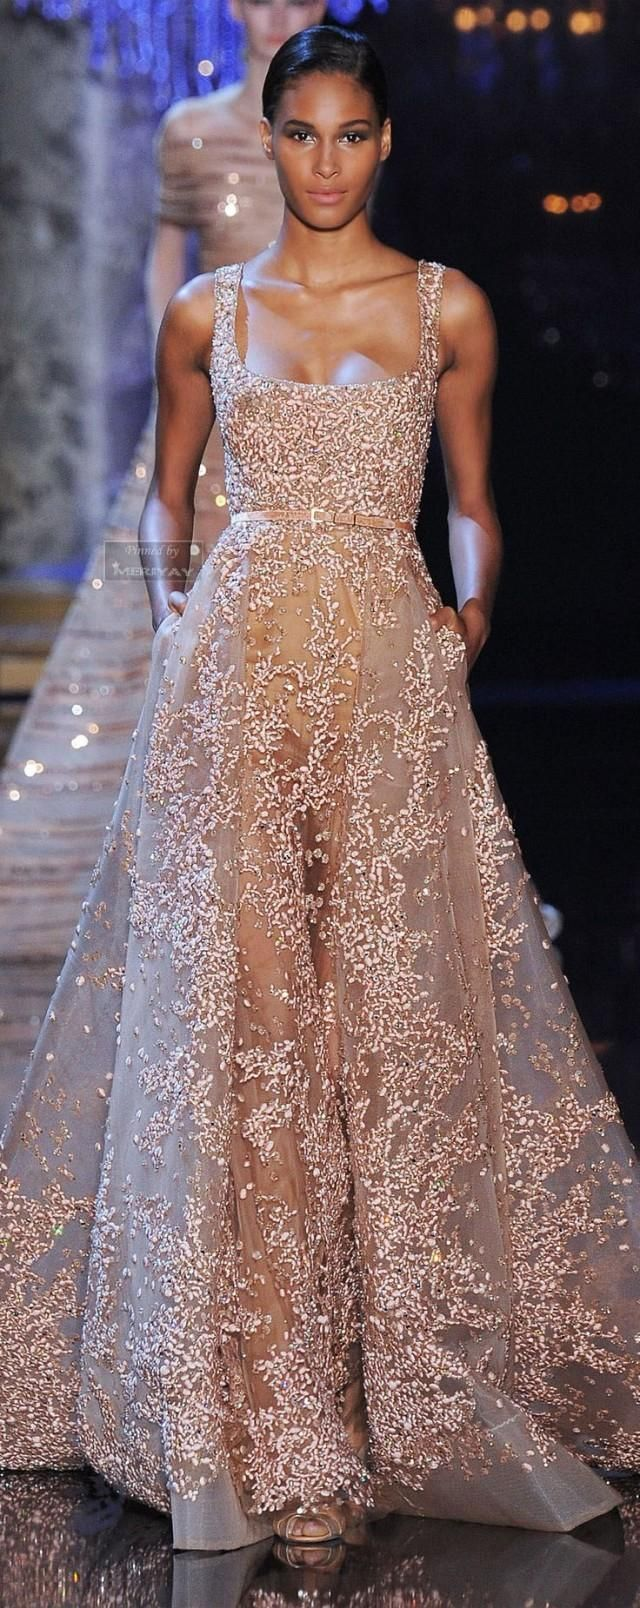 best fall images on pinterest high fashion night out